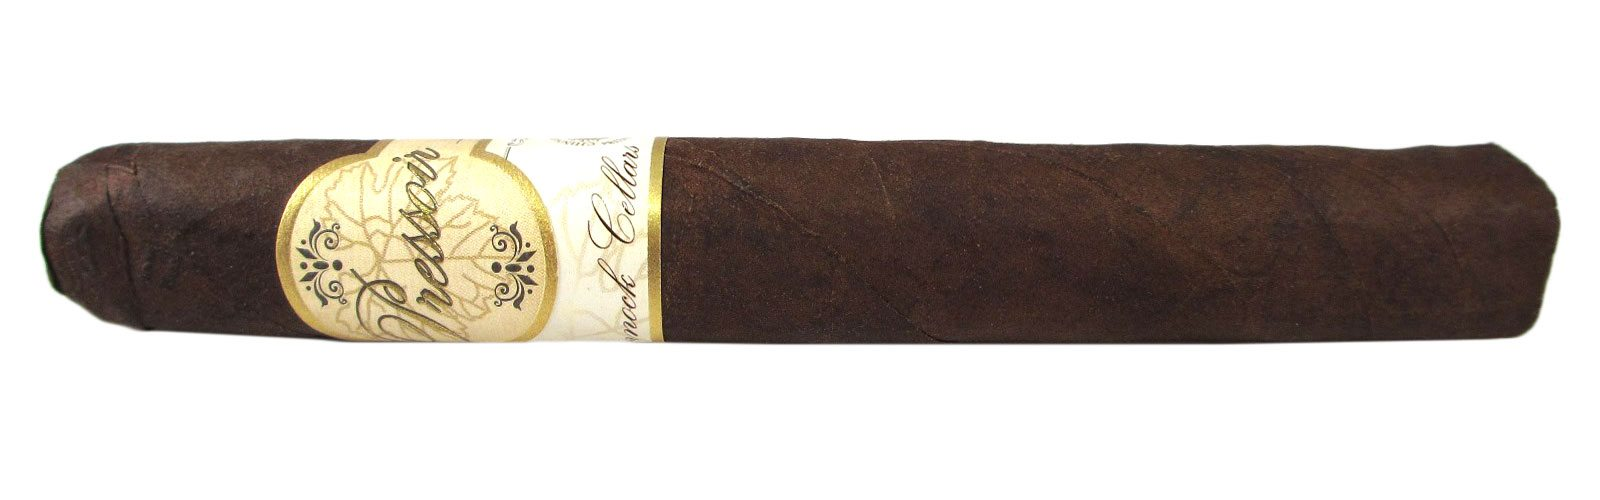 Blind Cigar Review: Chinnock Cellars | Pressoir Toro